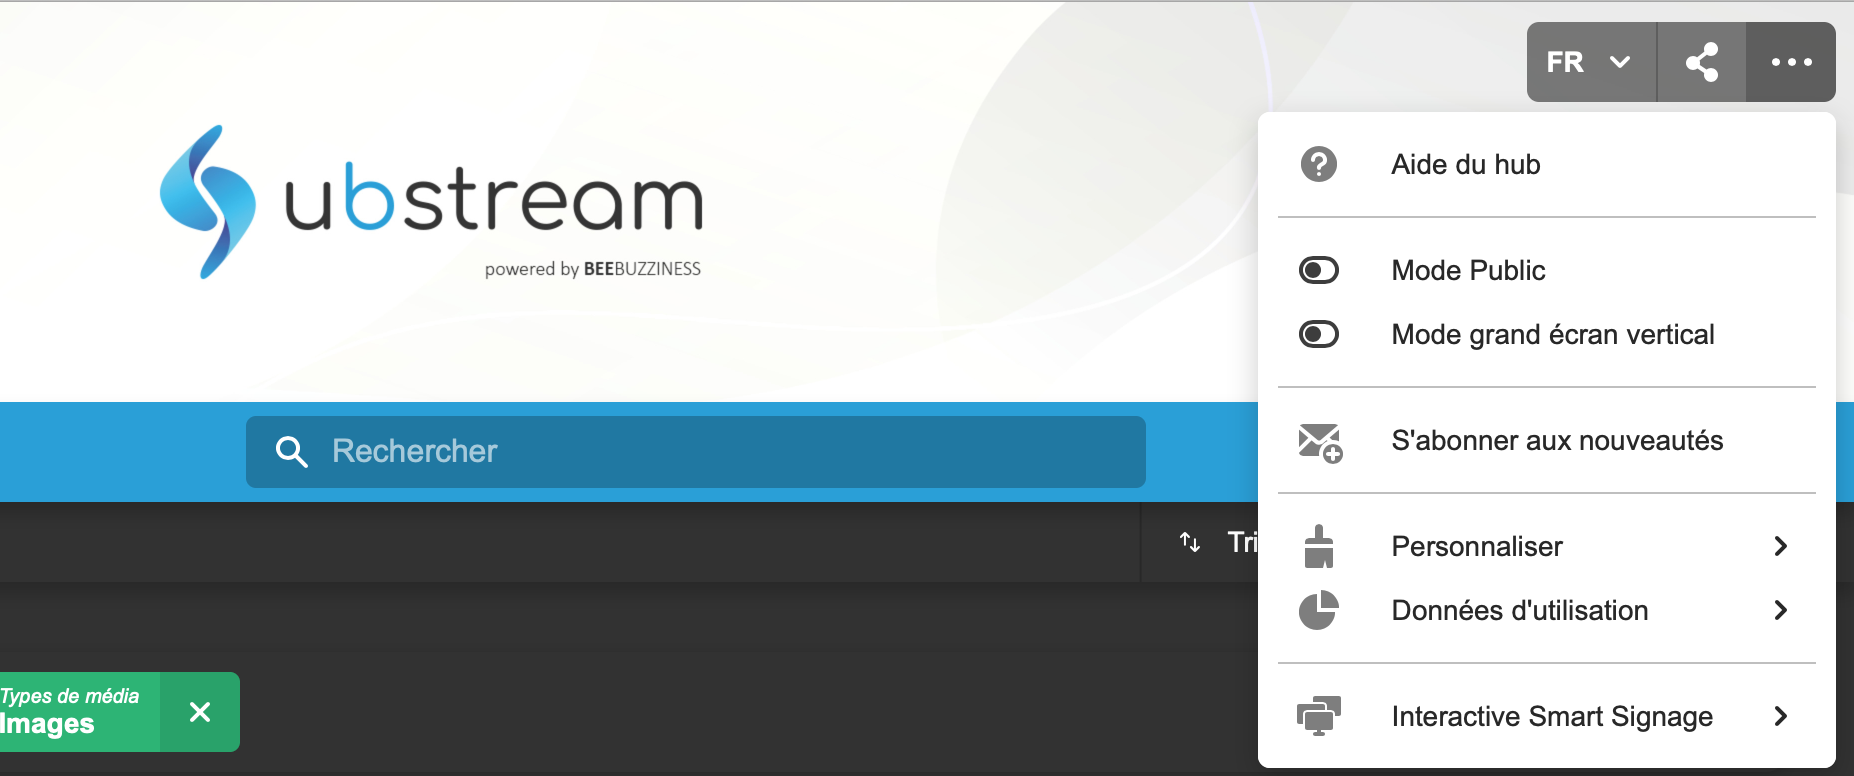 ubstream-menu-toolbox.png